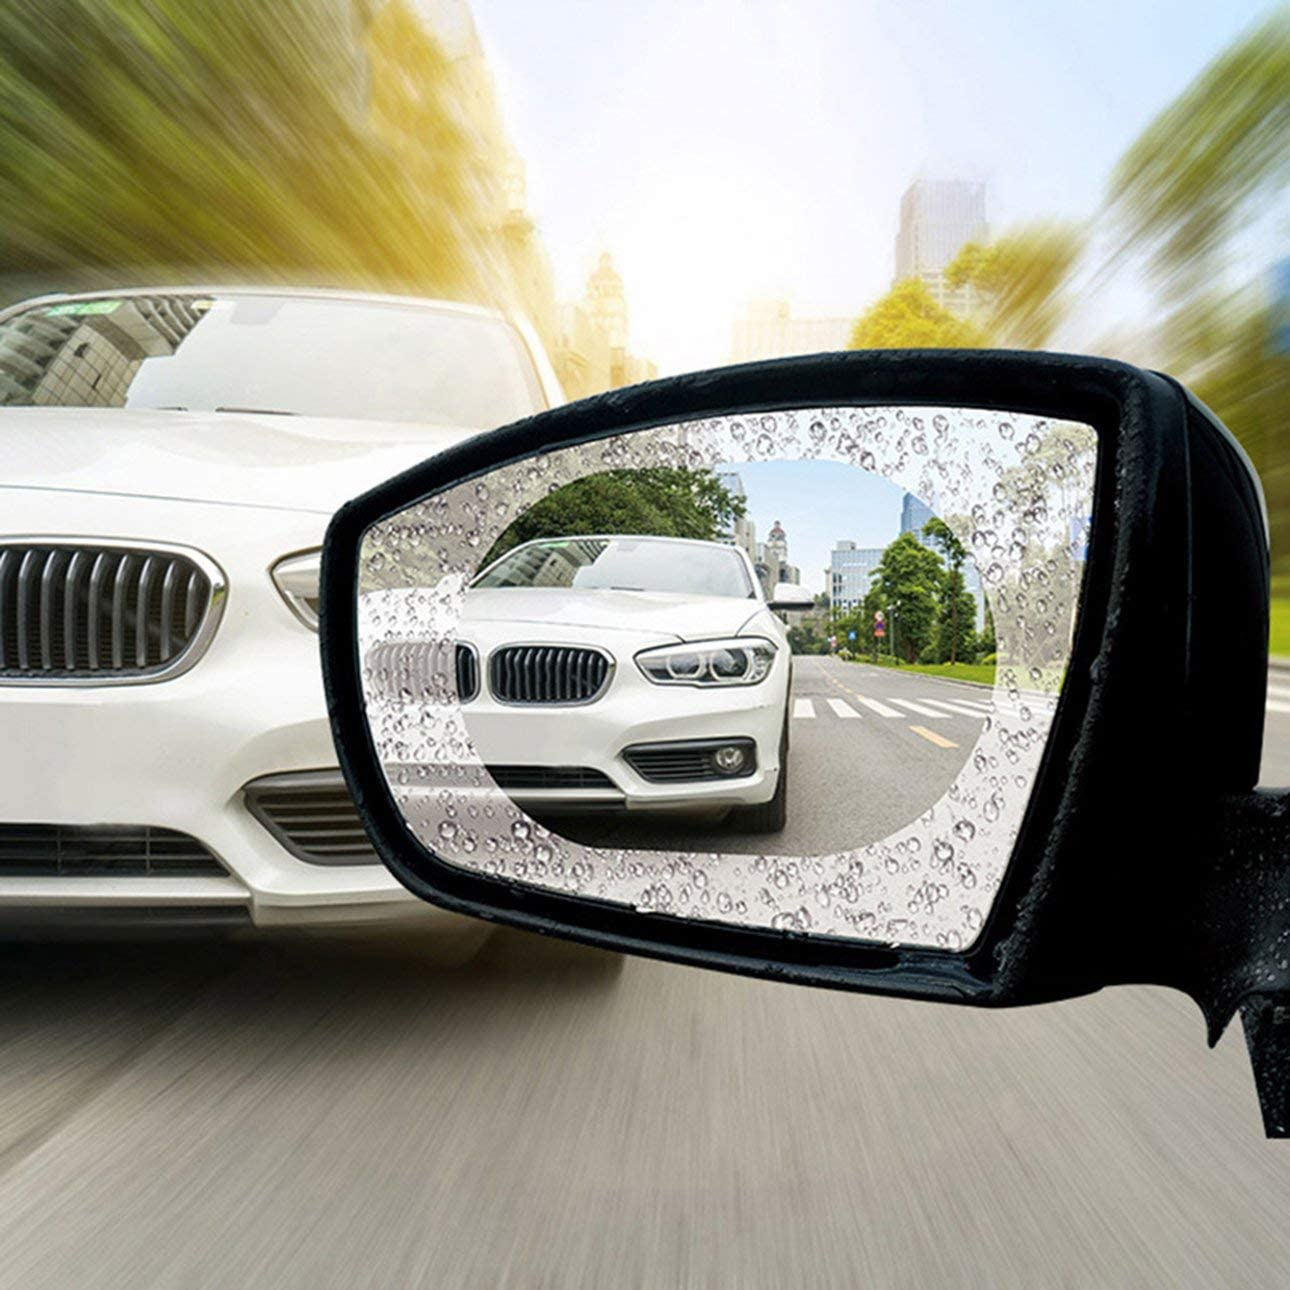 Liobaba Car Rearview Mirror Protective Film Anti Fog Window Clear Rainproof Rear View Mirror Protective Soft Film Auto Accessories